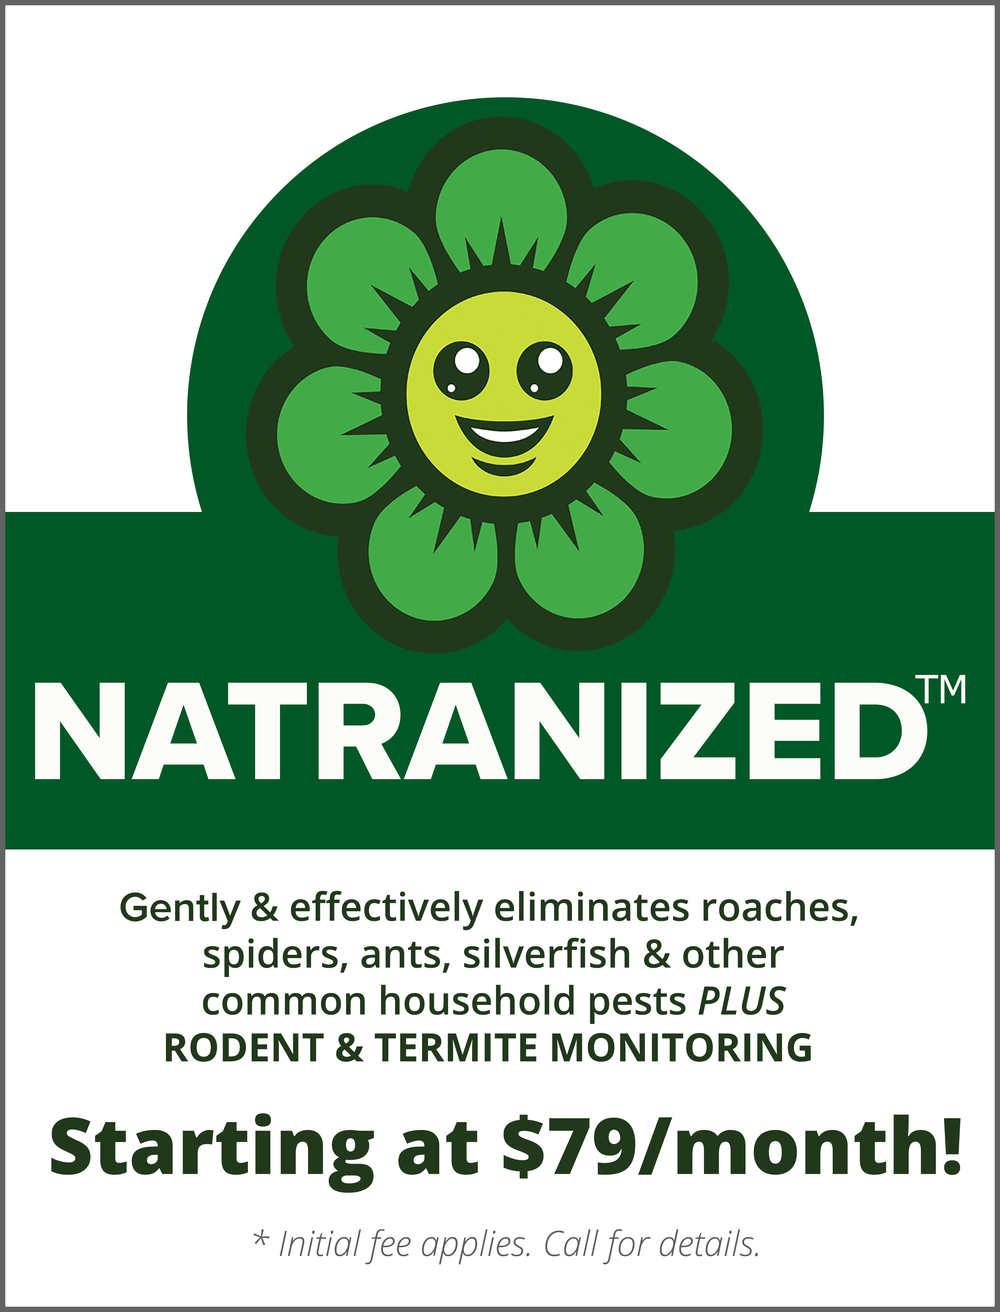 NATRANIZED Protection Plans start at just $79/mo.